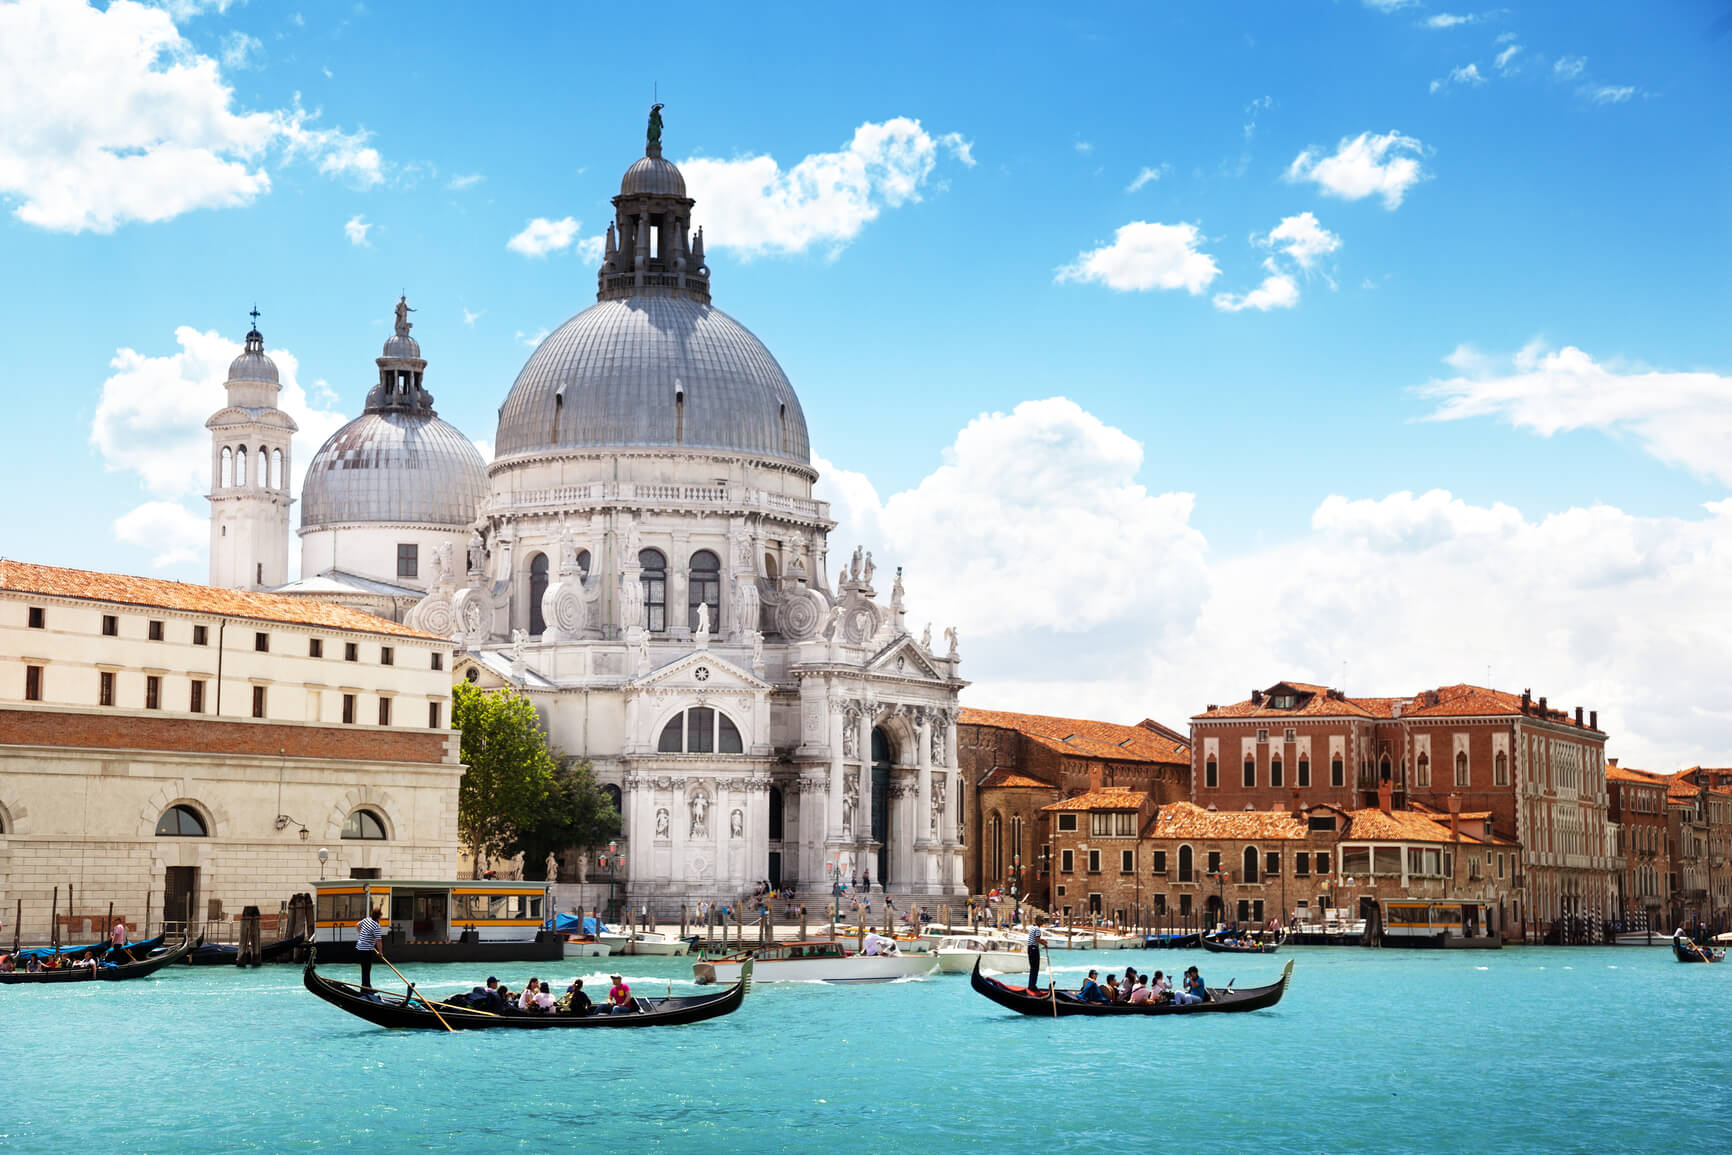 Miami to Venice, Italy for only $355 roundtrip